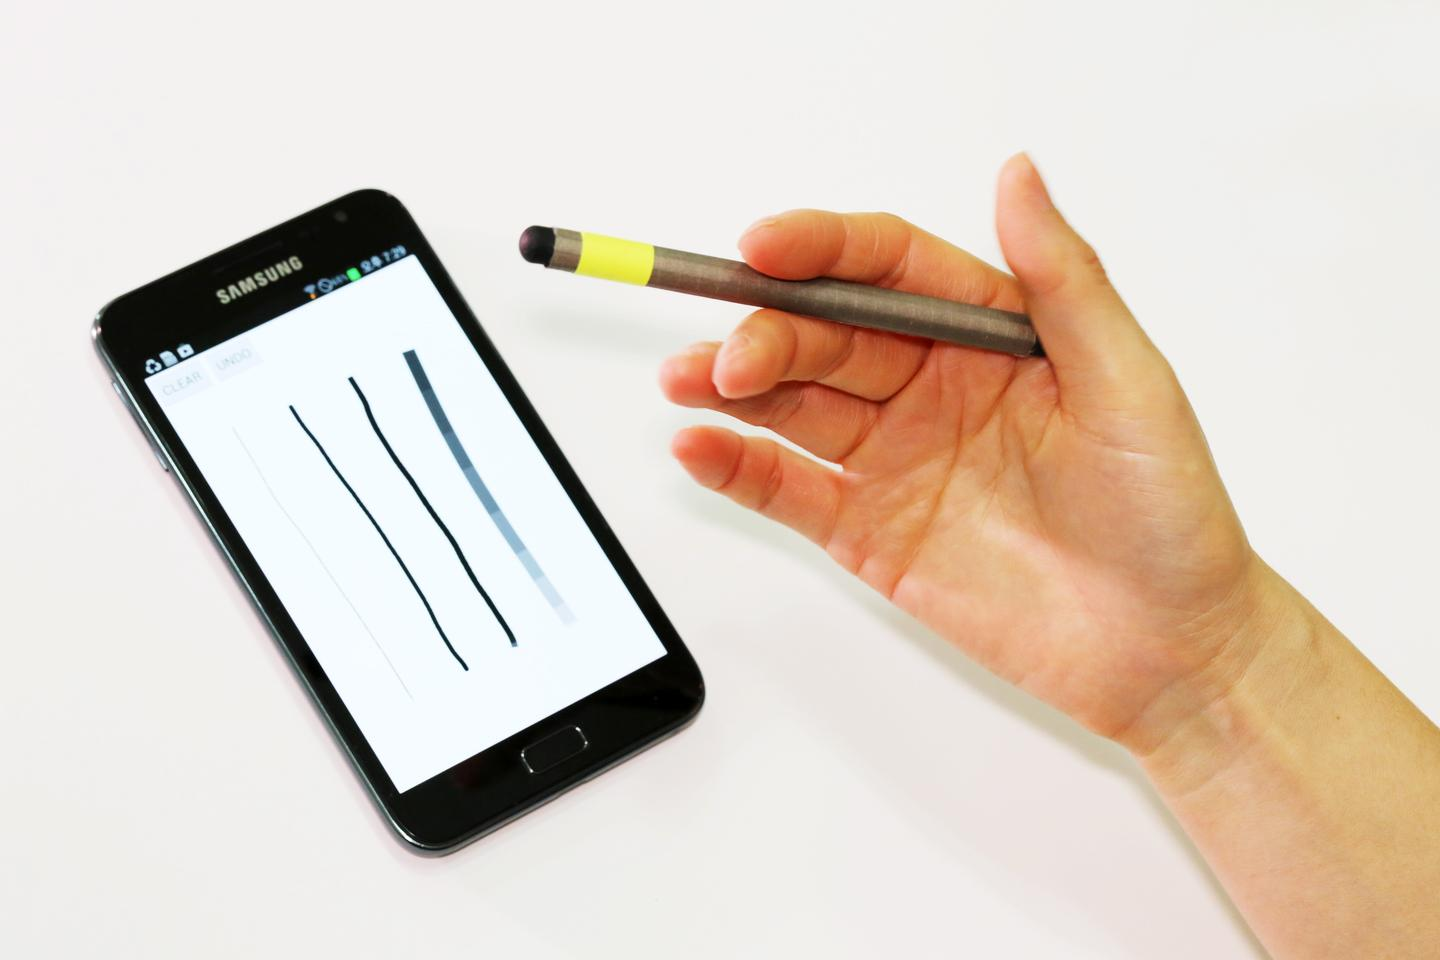 The MagPen contains a magnet which is detected by the phone's existing magnetometers